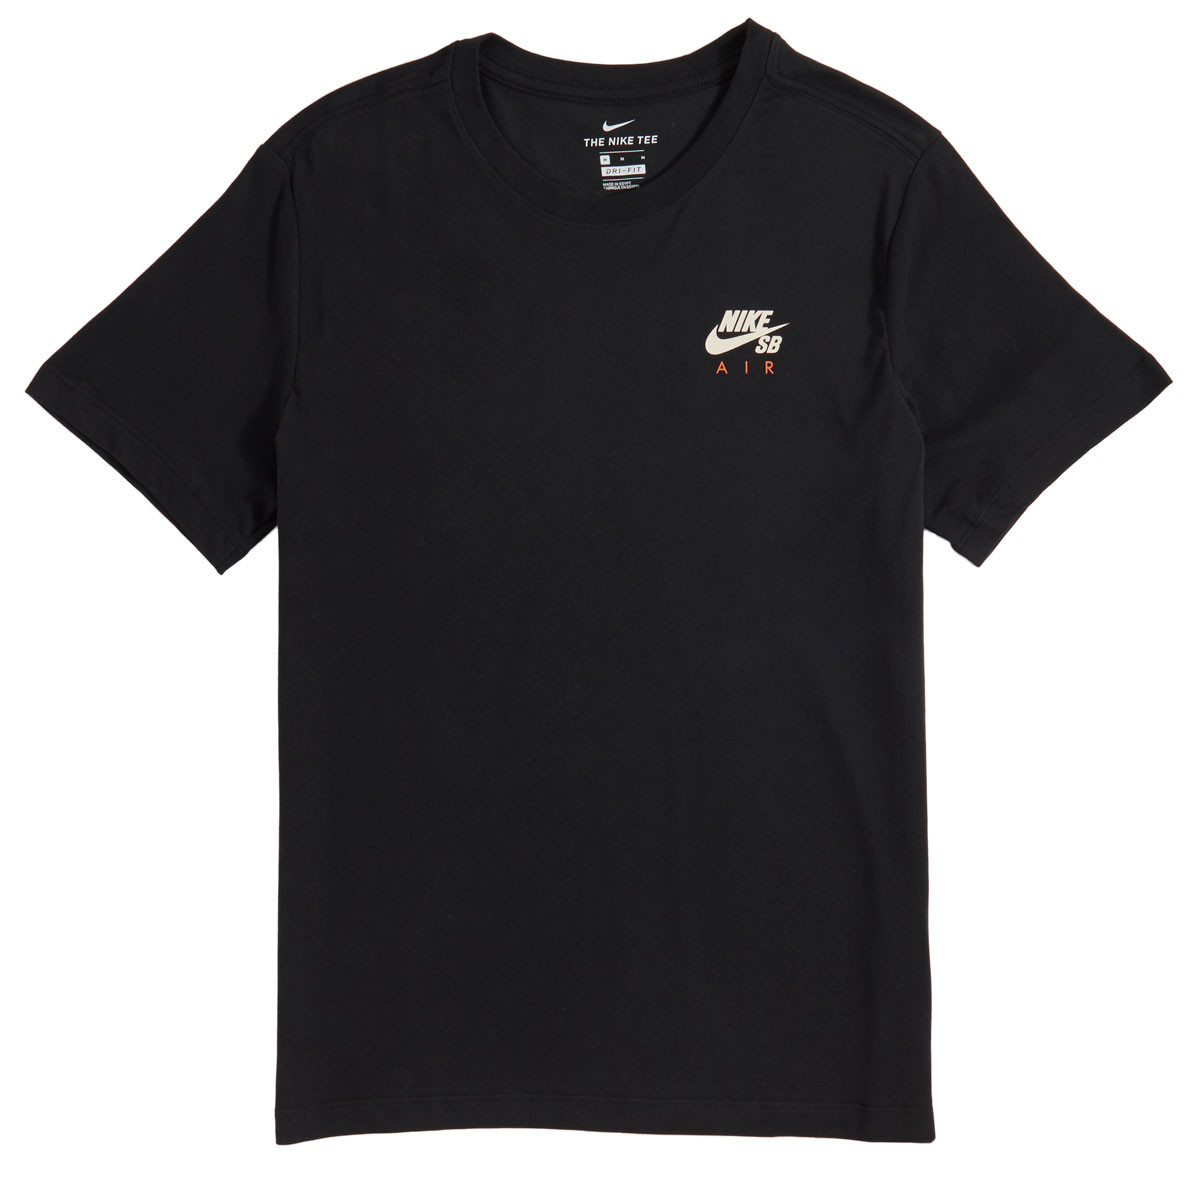 84962618 Nike SB Dri-fit Air T-Shirt - Black/Light Cream